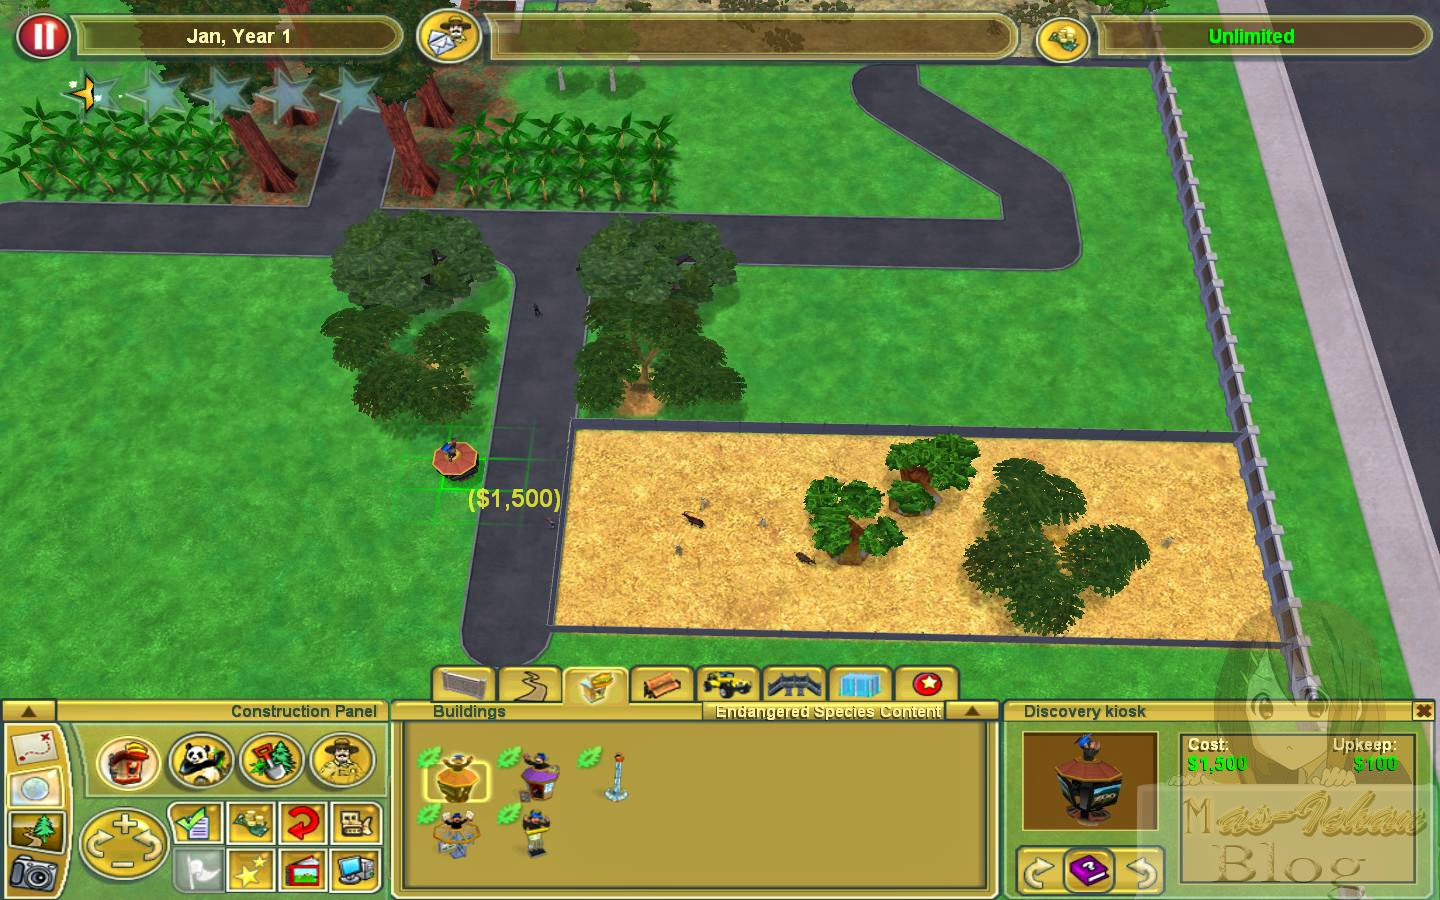 ⭐ Download zoo tycoon 2 marine mania torrent | Zoo tycoon 2